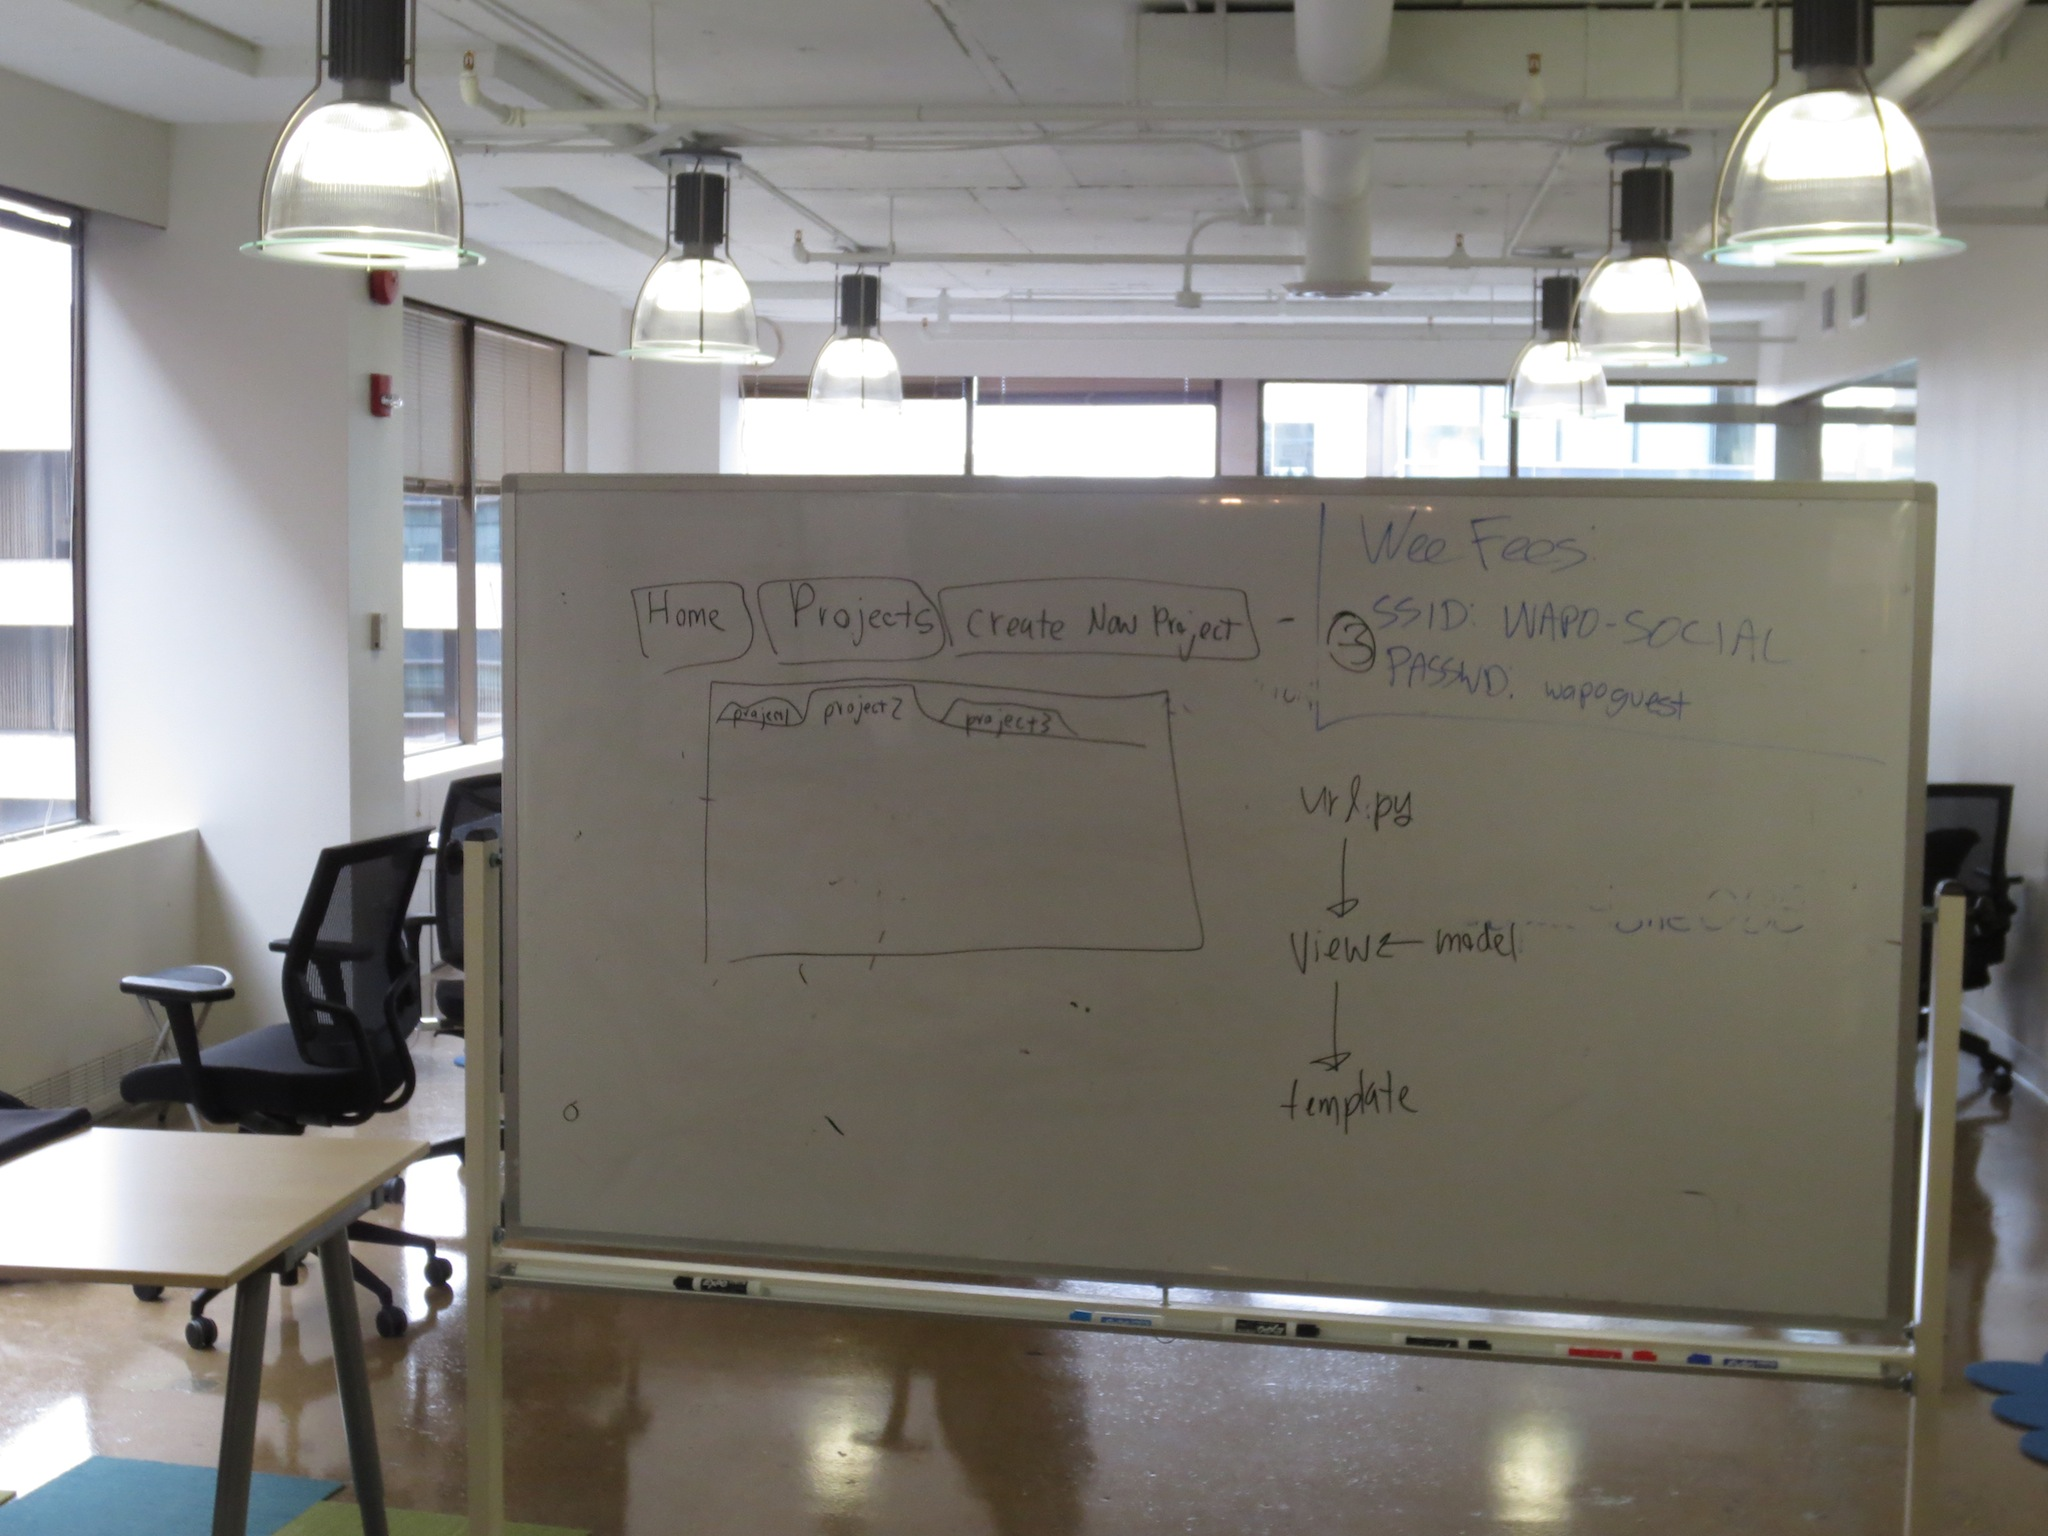 Whiteboarding the Jenkins project